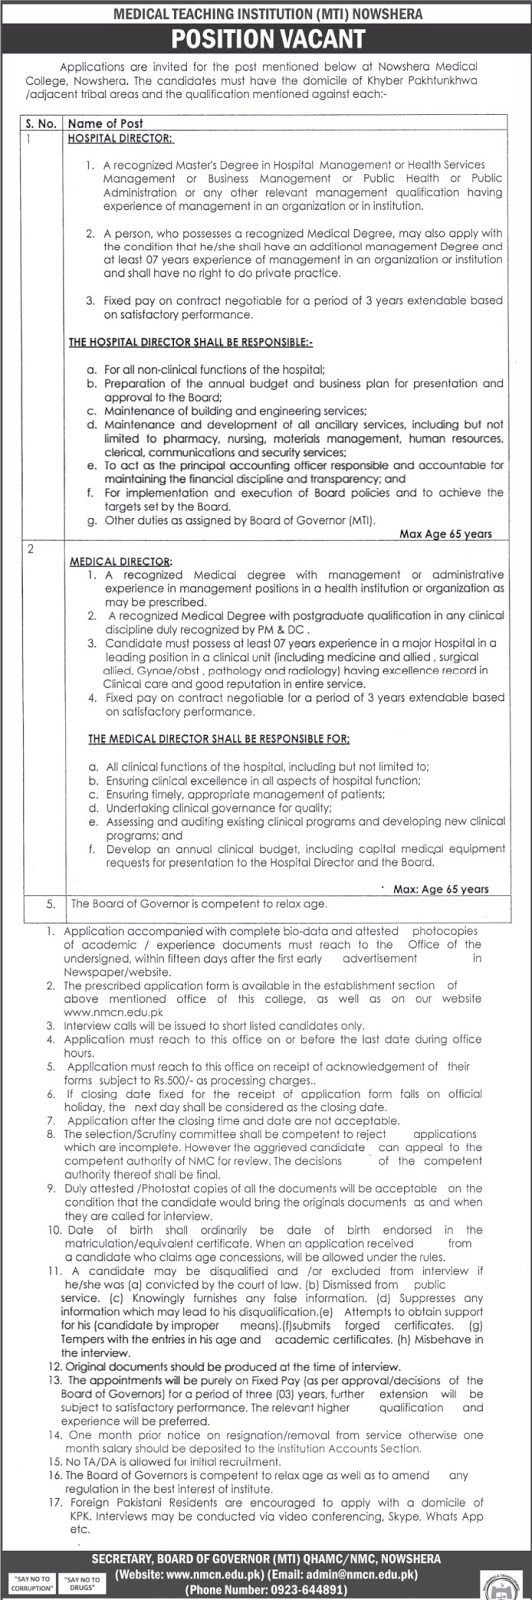 MTI Jobs In Nowshera Medical College Teaching Institutions 1 June 2017